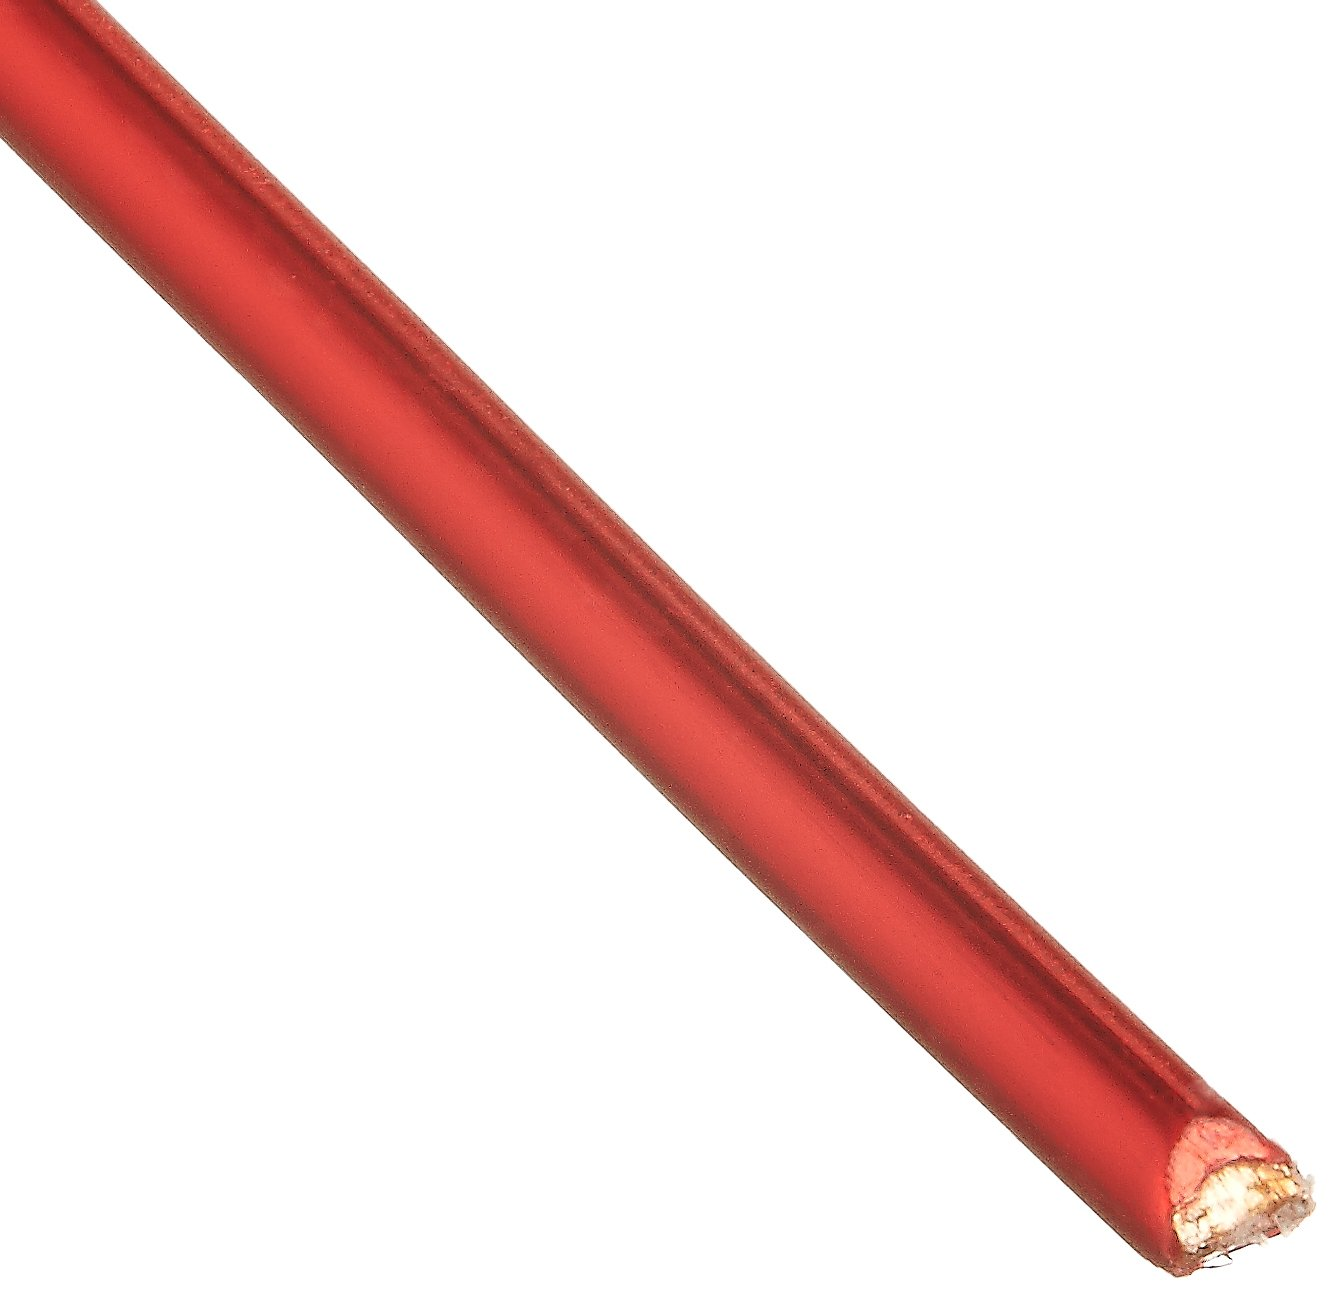 Remington Industries 18SNSP Magnet Wire, Enameled Copper Wire, 18 AWG, 1.0 lb, 201' Length, 0.0415'' Diameter, Red